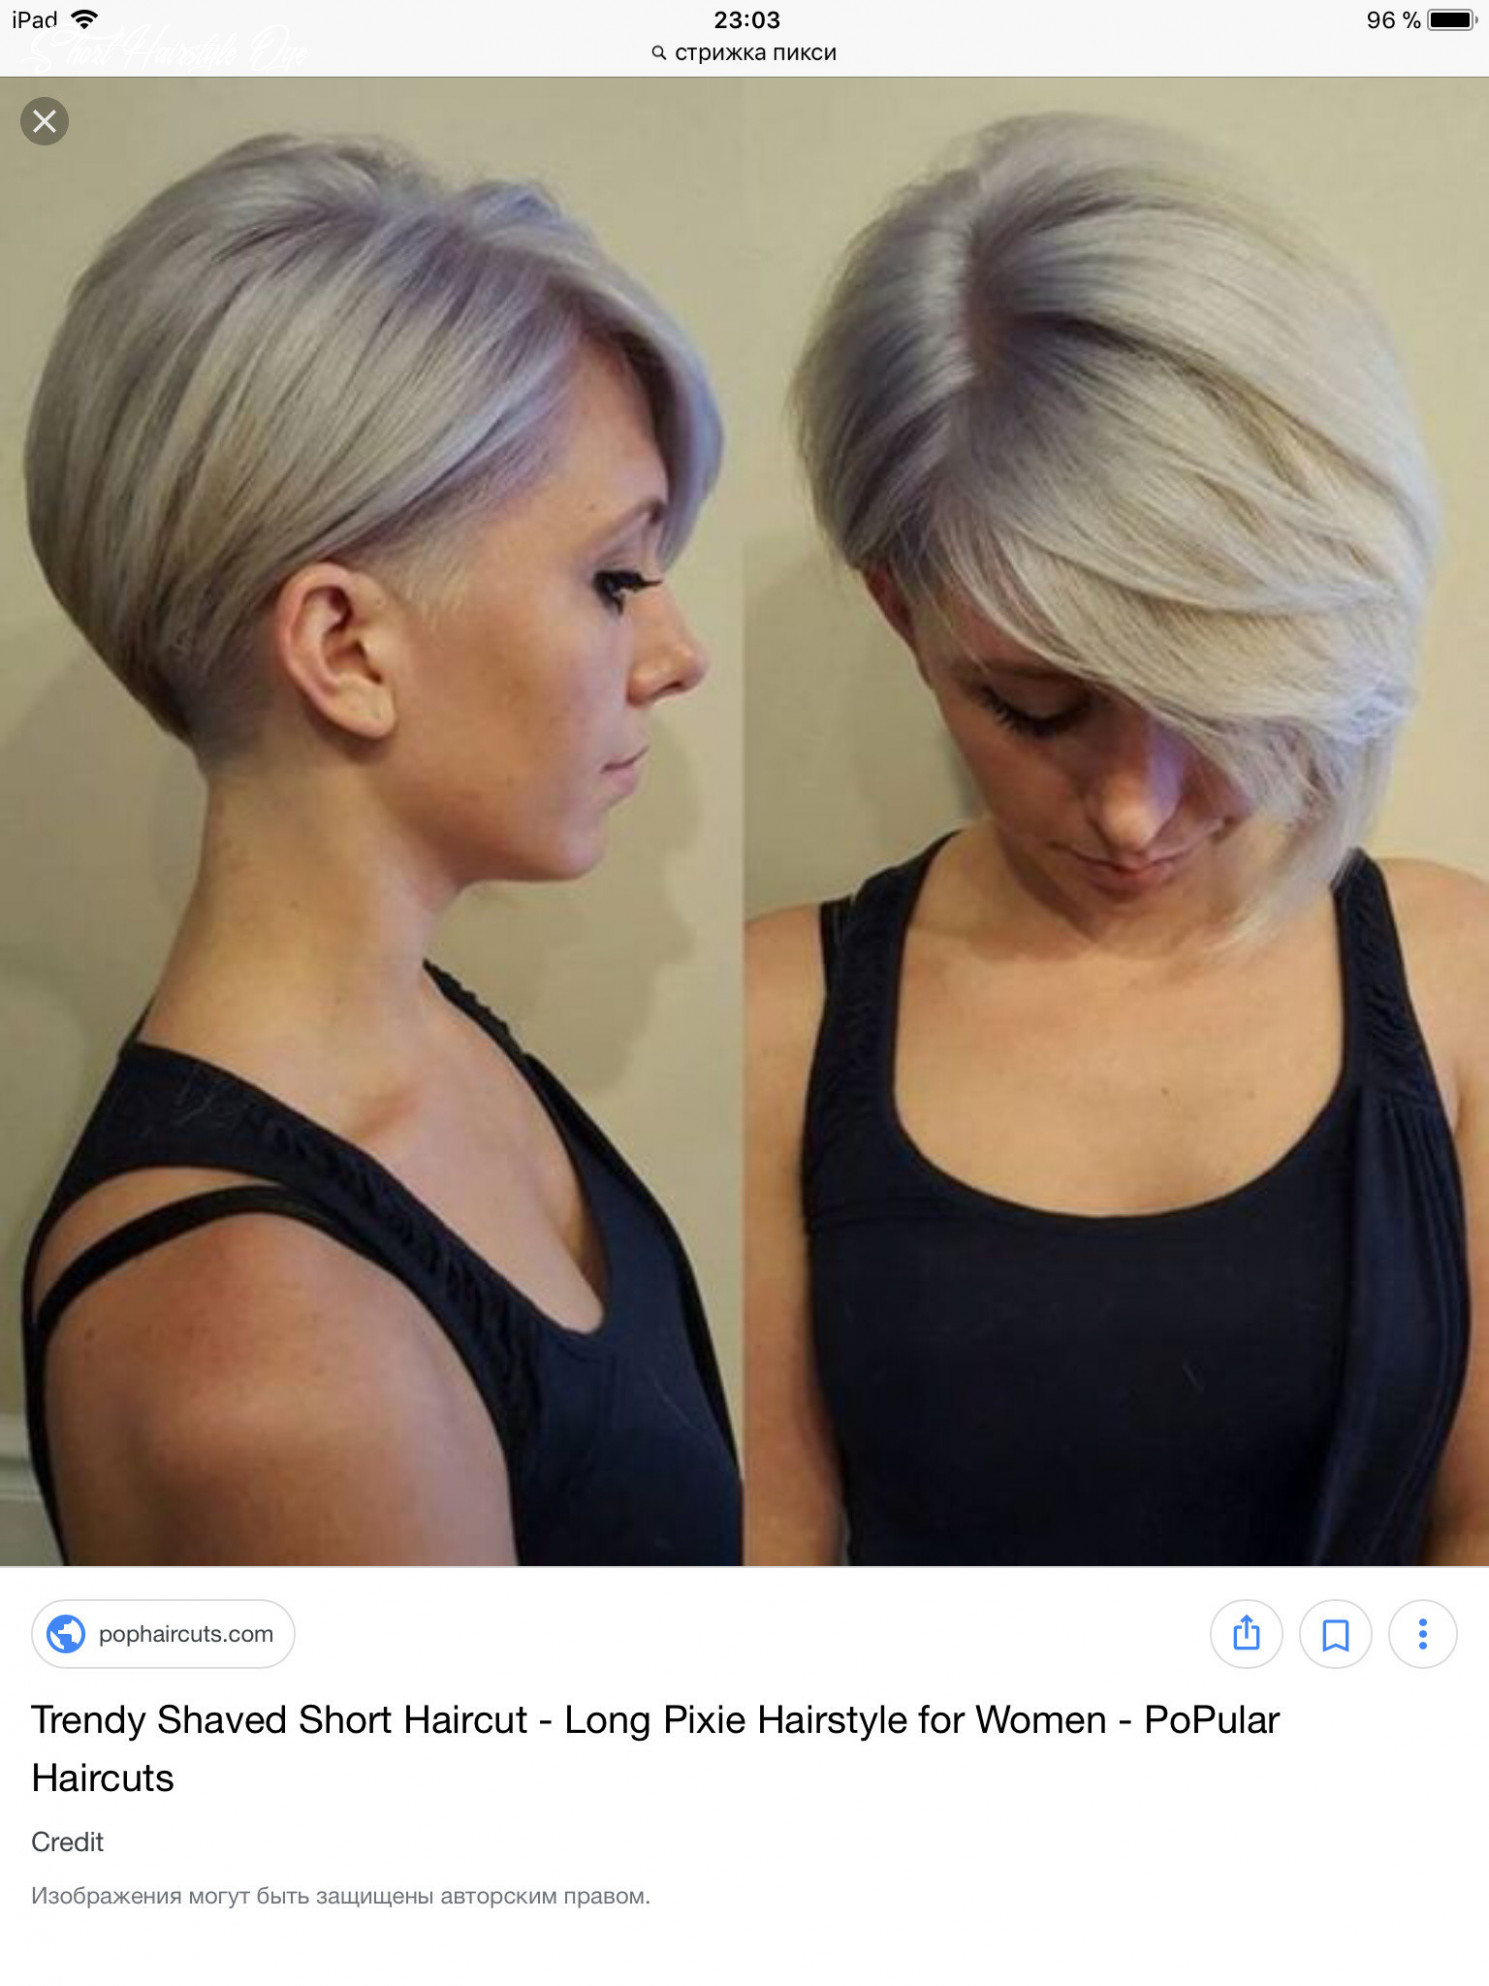 Pics of womens short hairstyles new 8 hair dye ideas for pixie